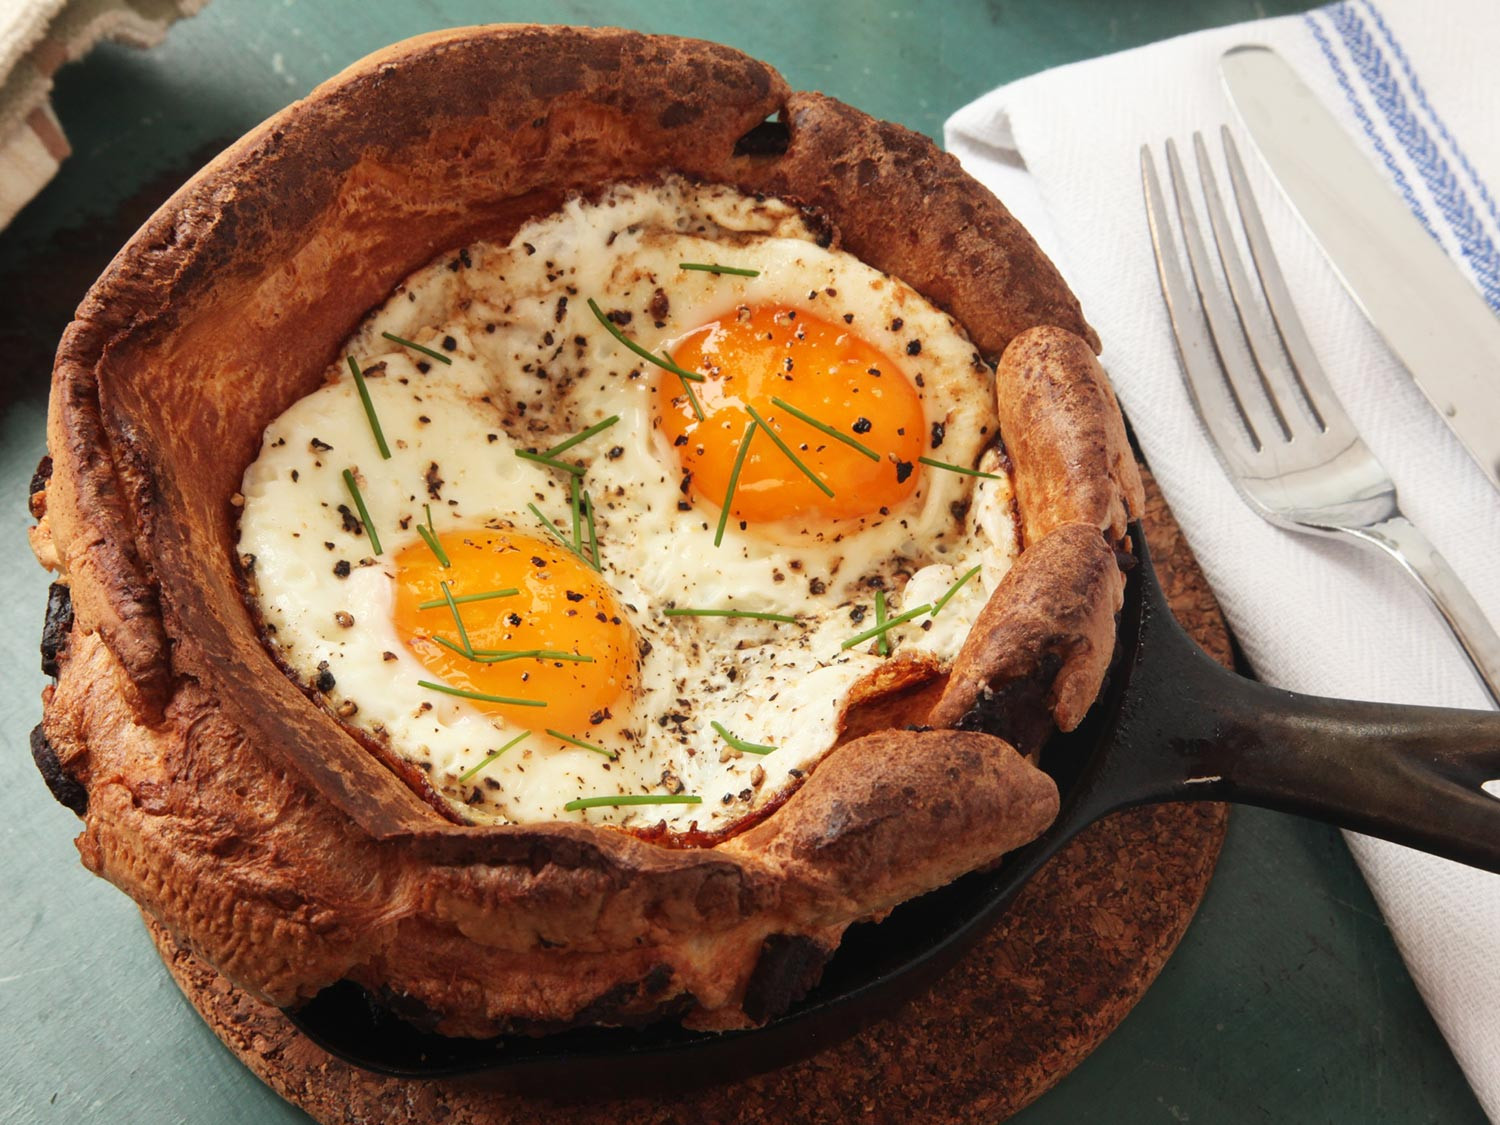 Best Egg Breakfast Recipes  24 Egg Breakfast Recipes to Start Your Day